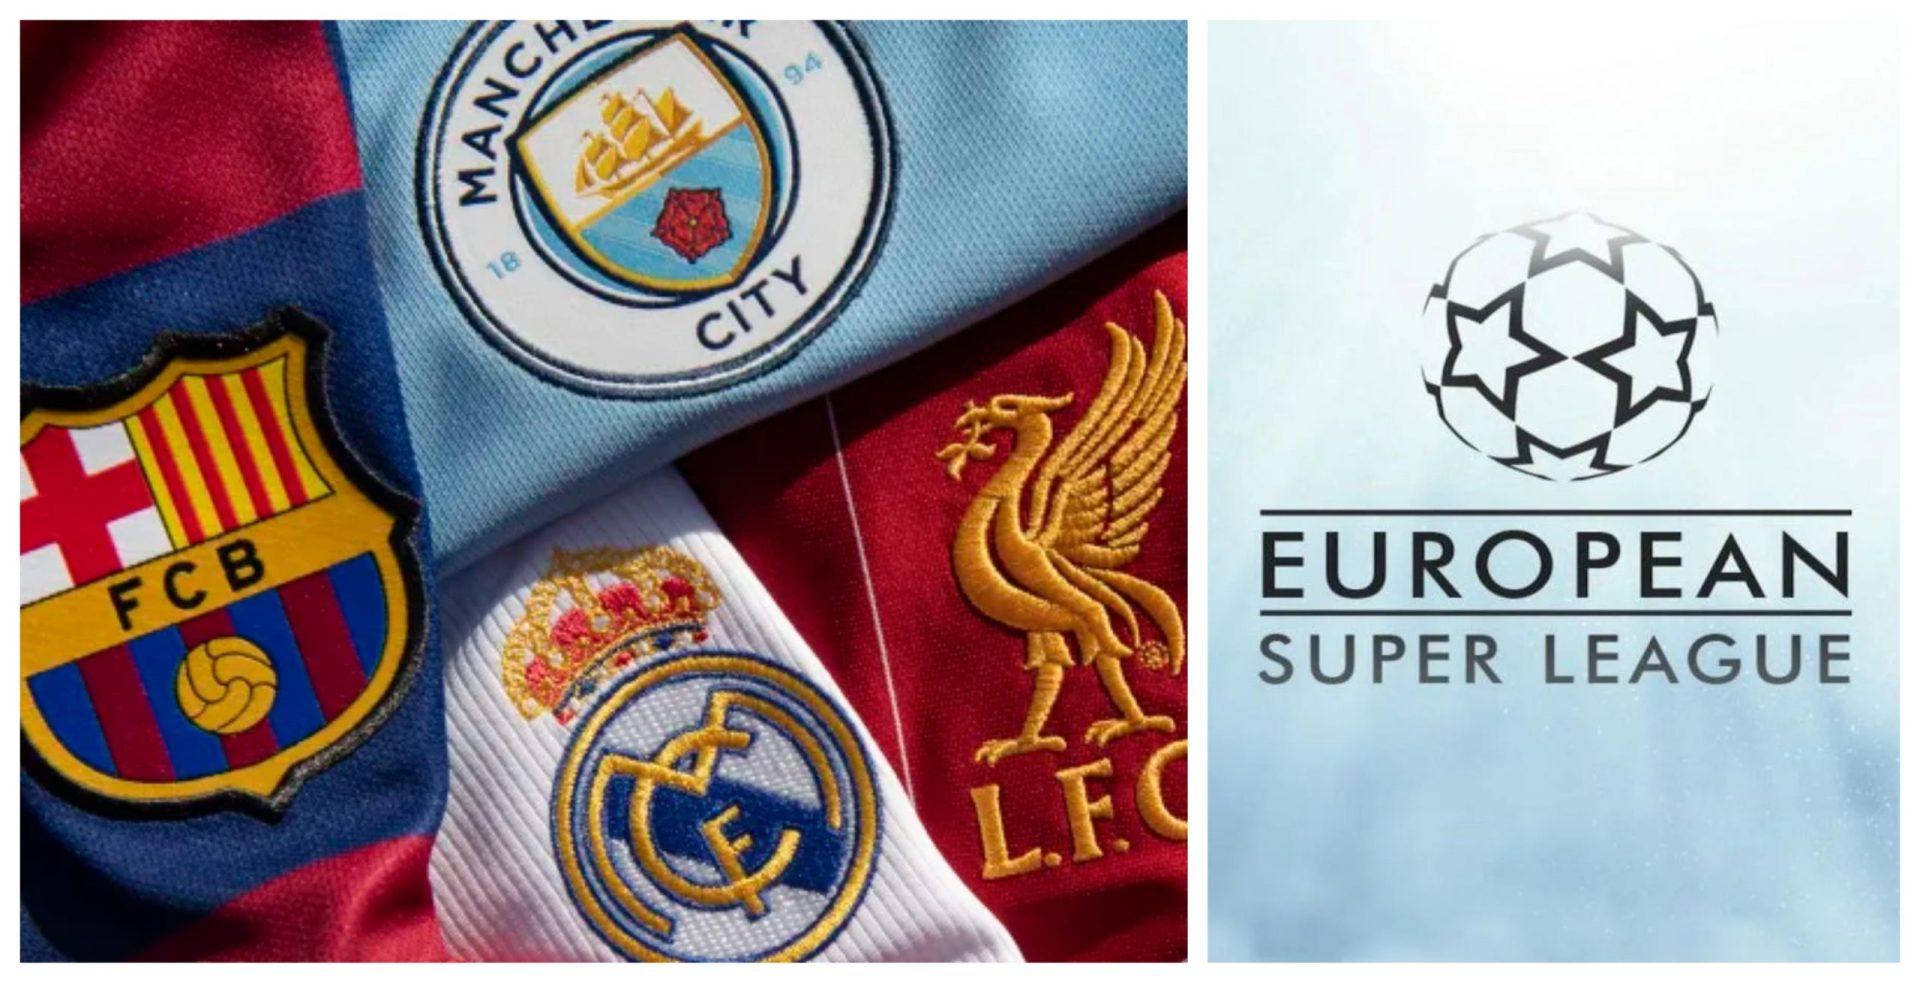 12 Clubs announce their participation in the brand new European Super League - THE SPORTS ROOM